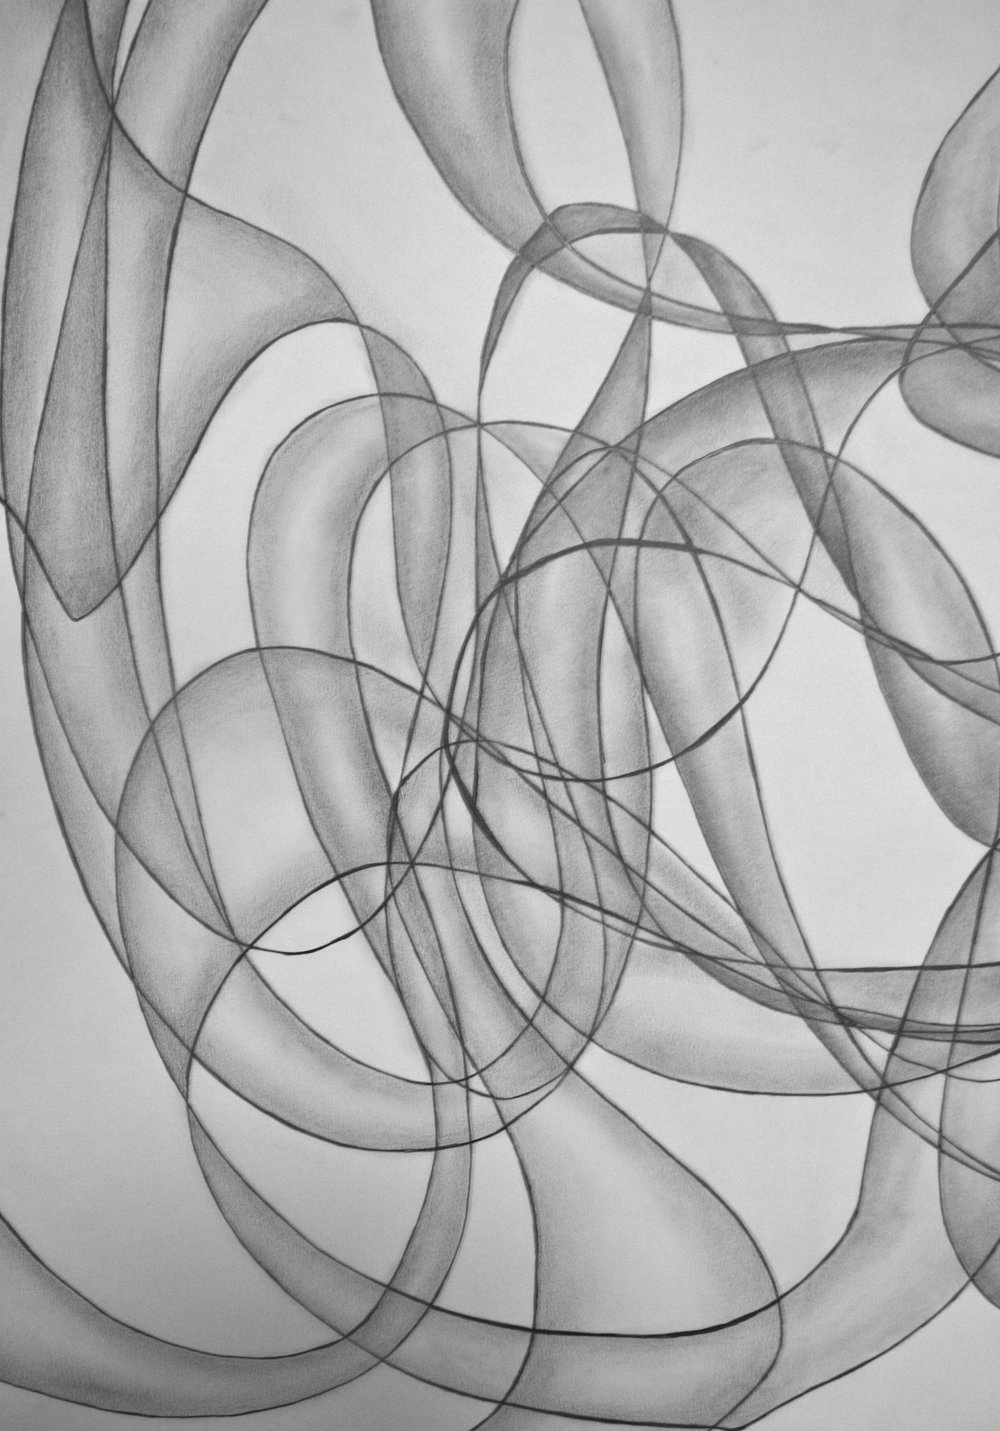 Dyptich Ribbon Project @ UCSD, Pencil on Paper, (2011)